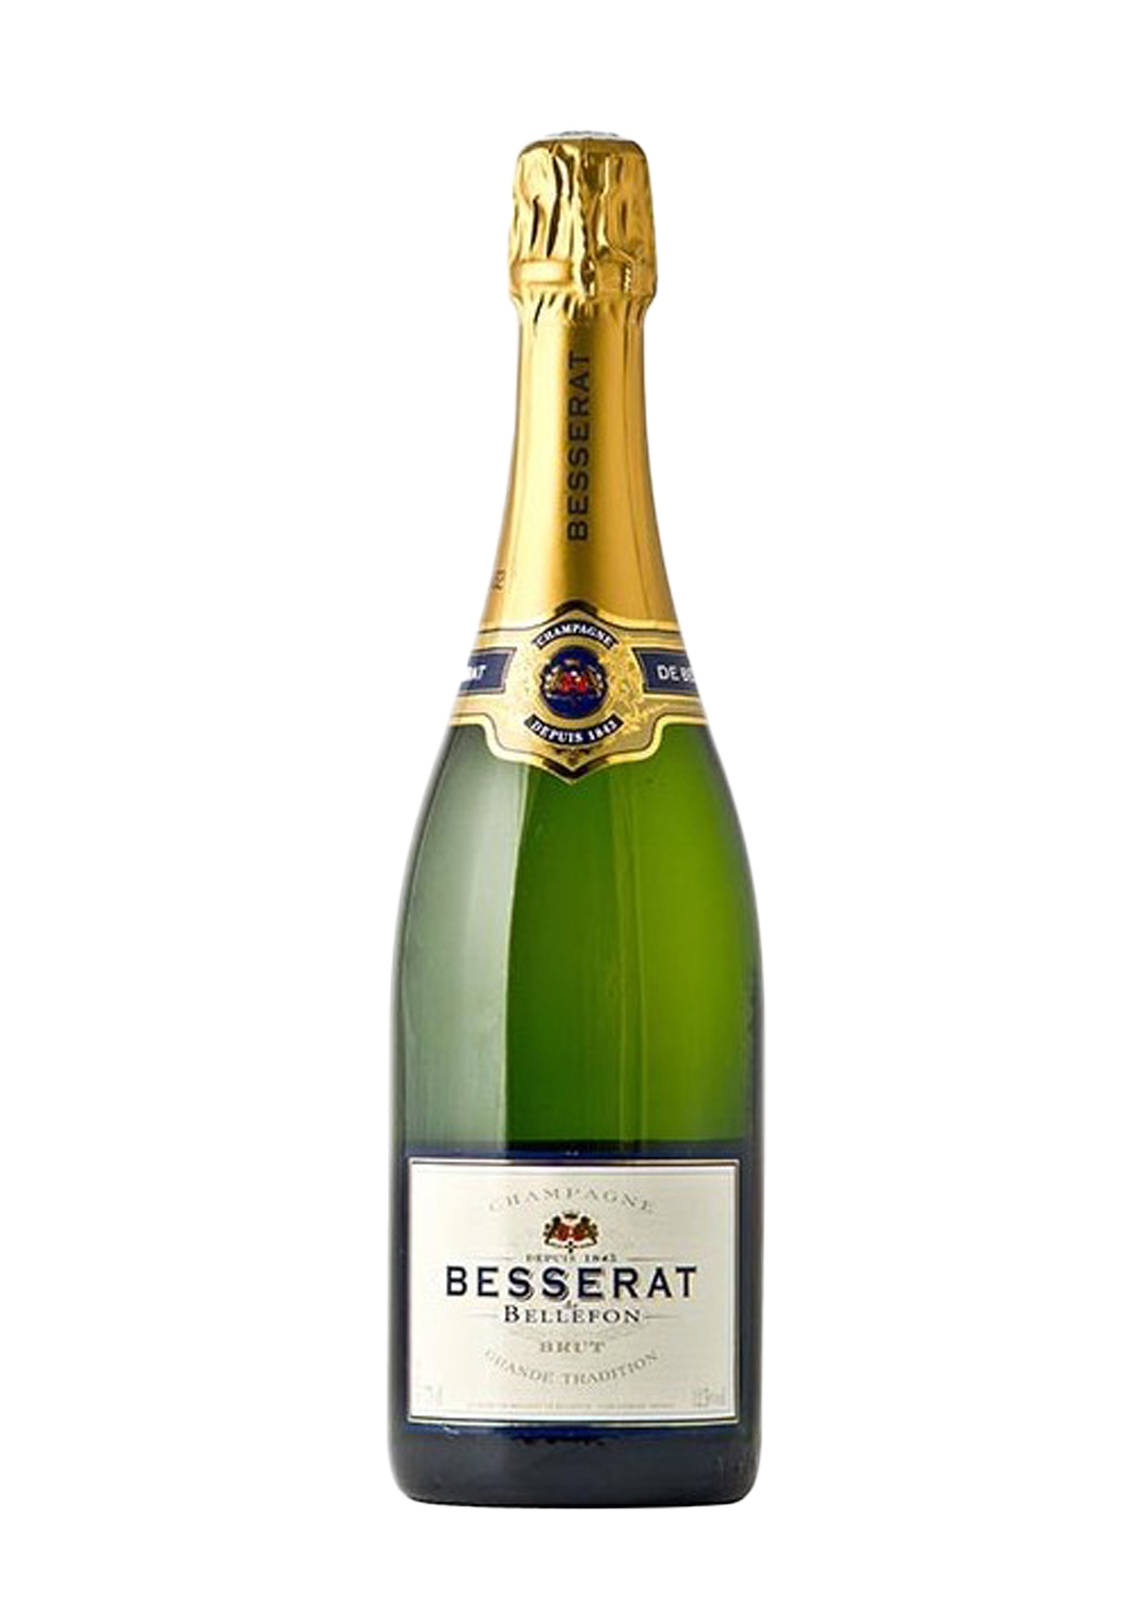 BESSERAT DE BELLEFON BRUT GRANDE TRADITION 75CL